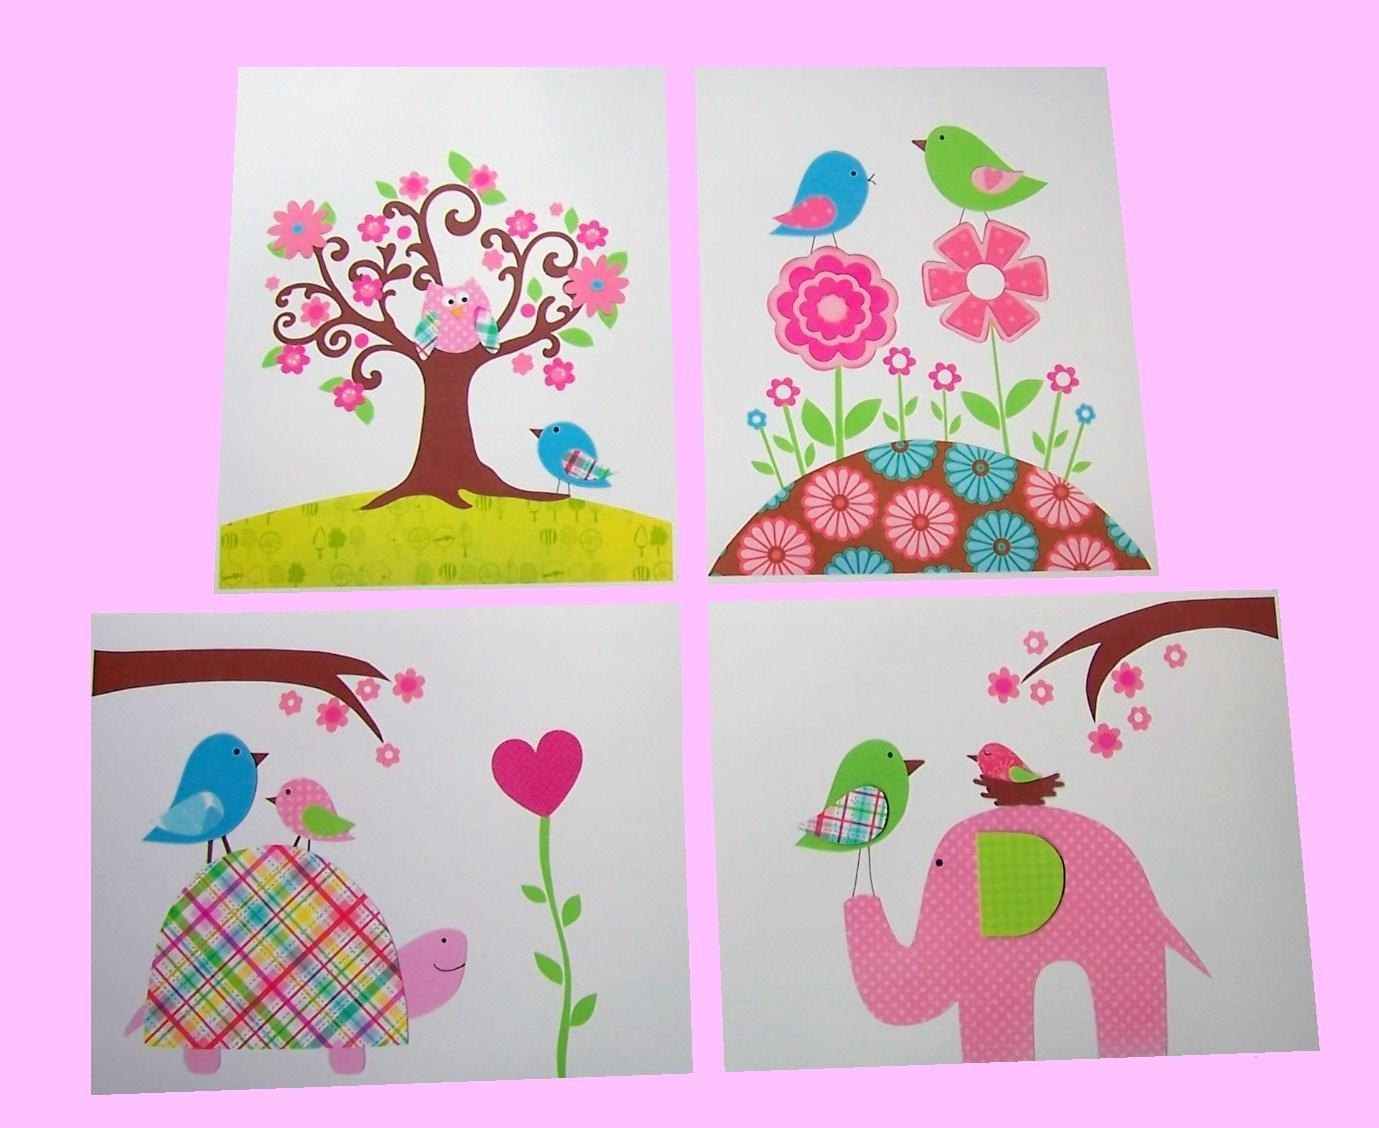 Wall Art Design Ideas: Paper Cuts Handmade Kid Wall Art Fabric For Recent Childrens Fabric Wall Art (View 8 of 15)